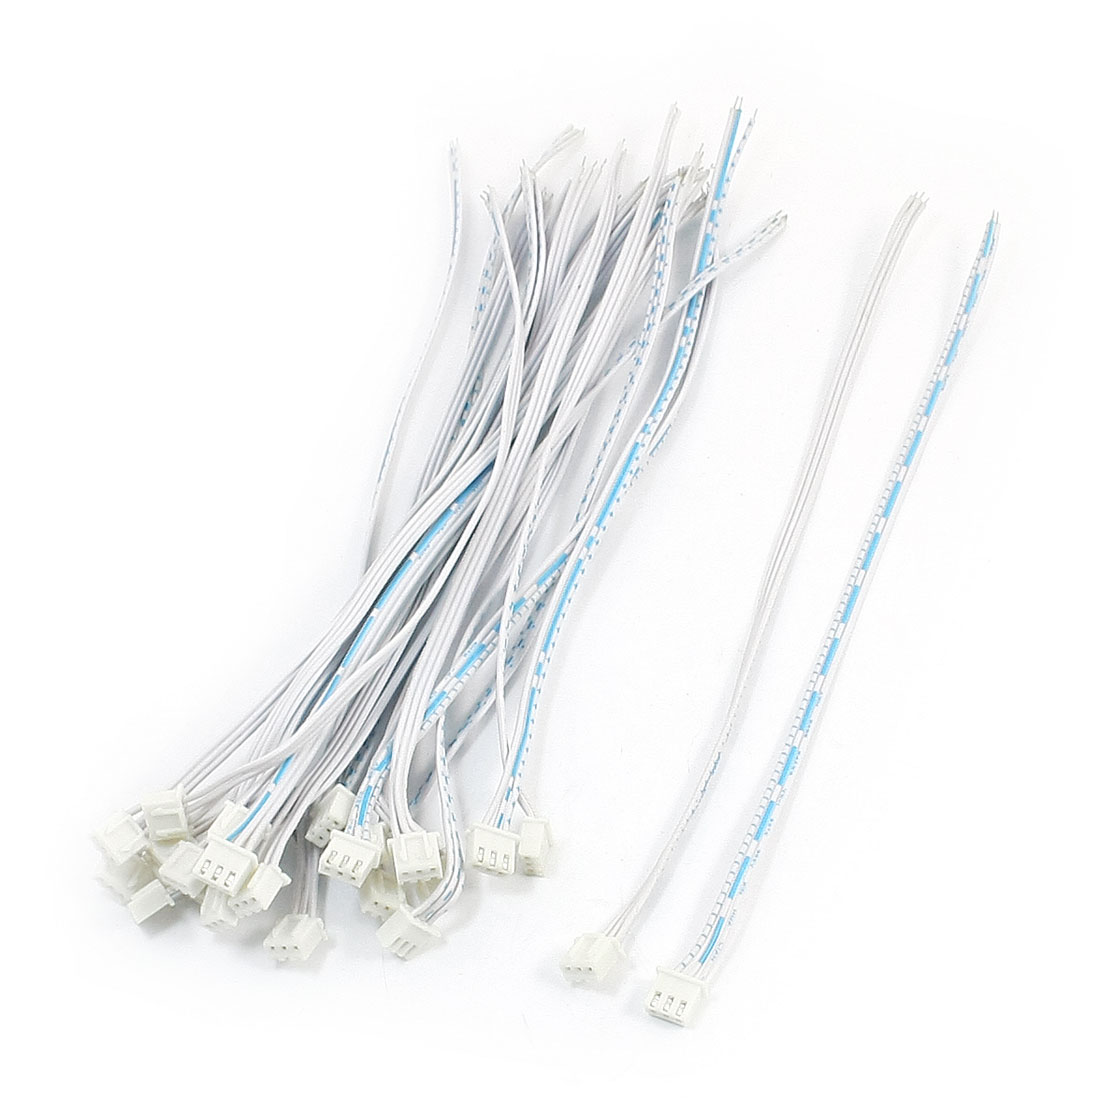 25pcs Single Head JST 2.54mm 3Pin Wire 20cm for RC BEC Lipo Battery